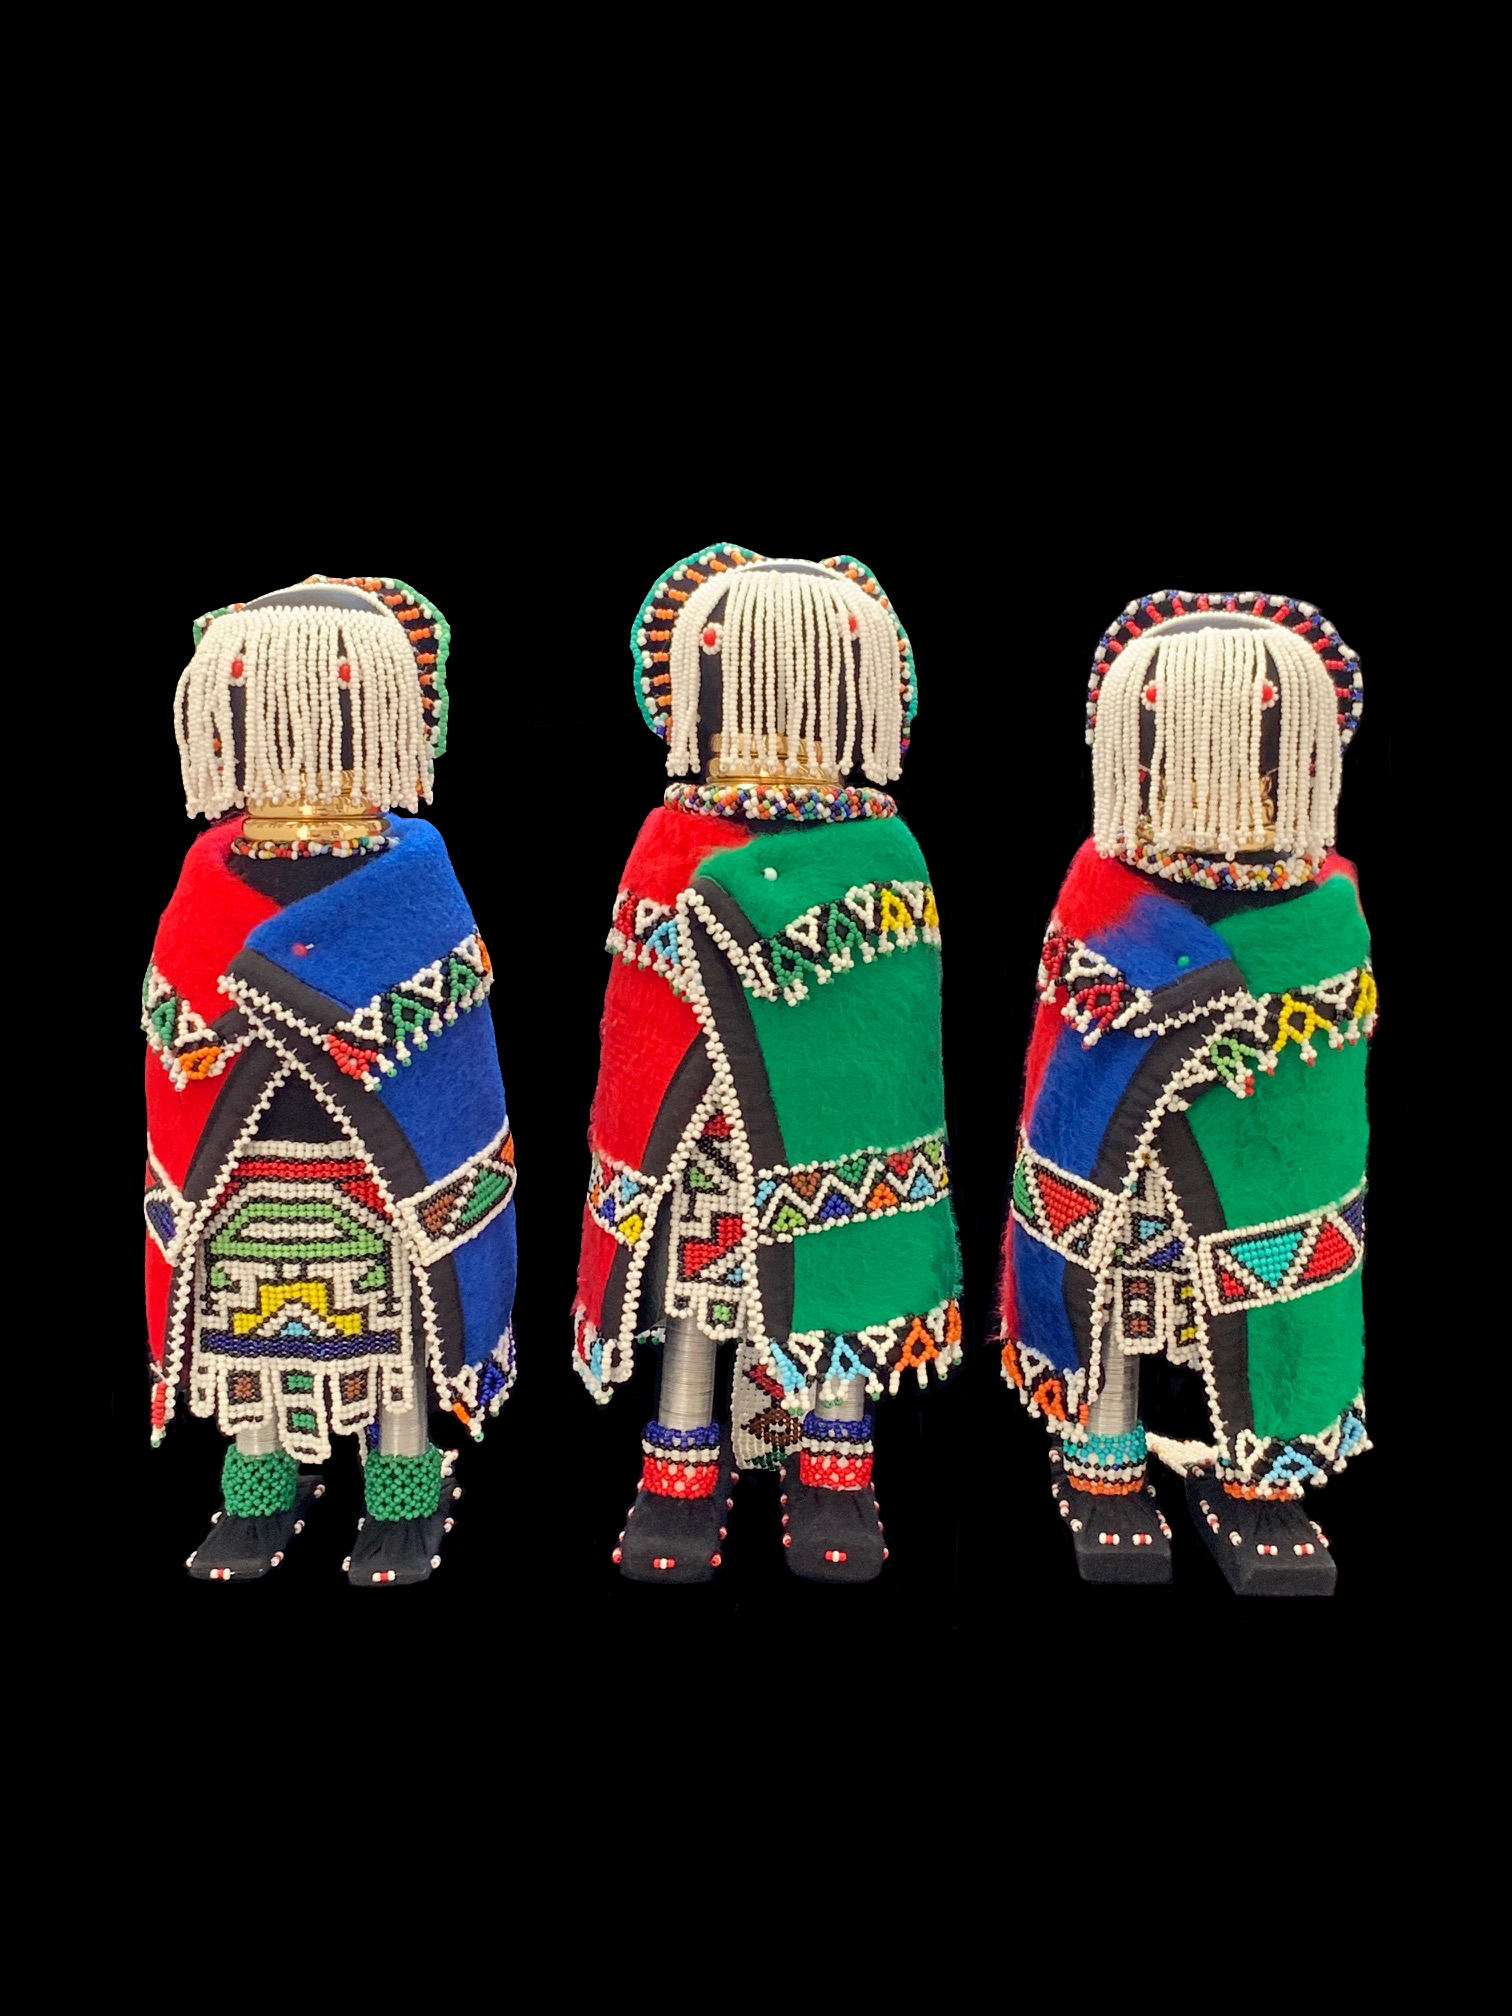 Bride Doll - Ndebele people, South Africa